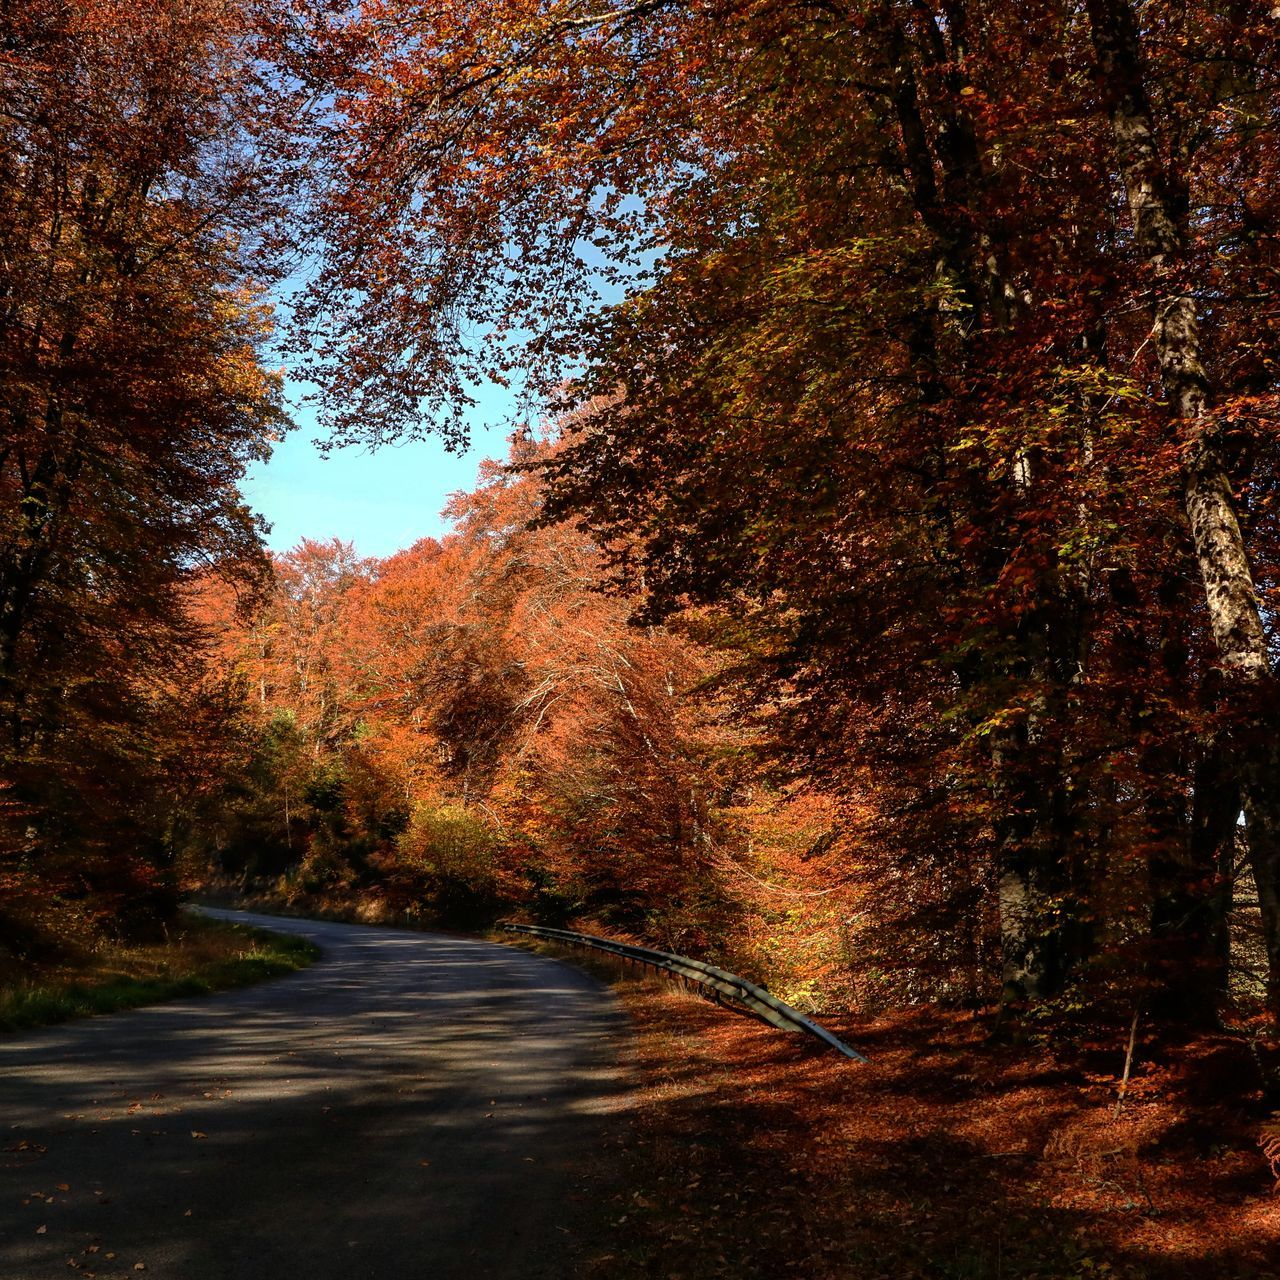 Route d'automne No People Nature Tree Outdoors Sky Day Beauty In Nature Orange Color Non-urban Scene Nature Tranquility Scenics Canonphotography Leaf Turns Red And Yellow Leafscape Leafseason Leafs Start To Fall Leafsporn